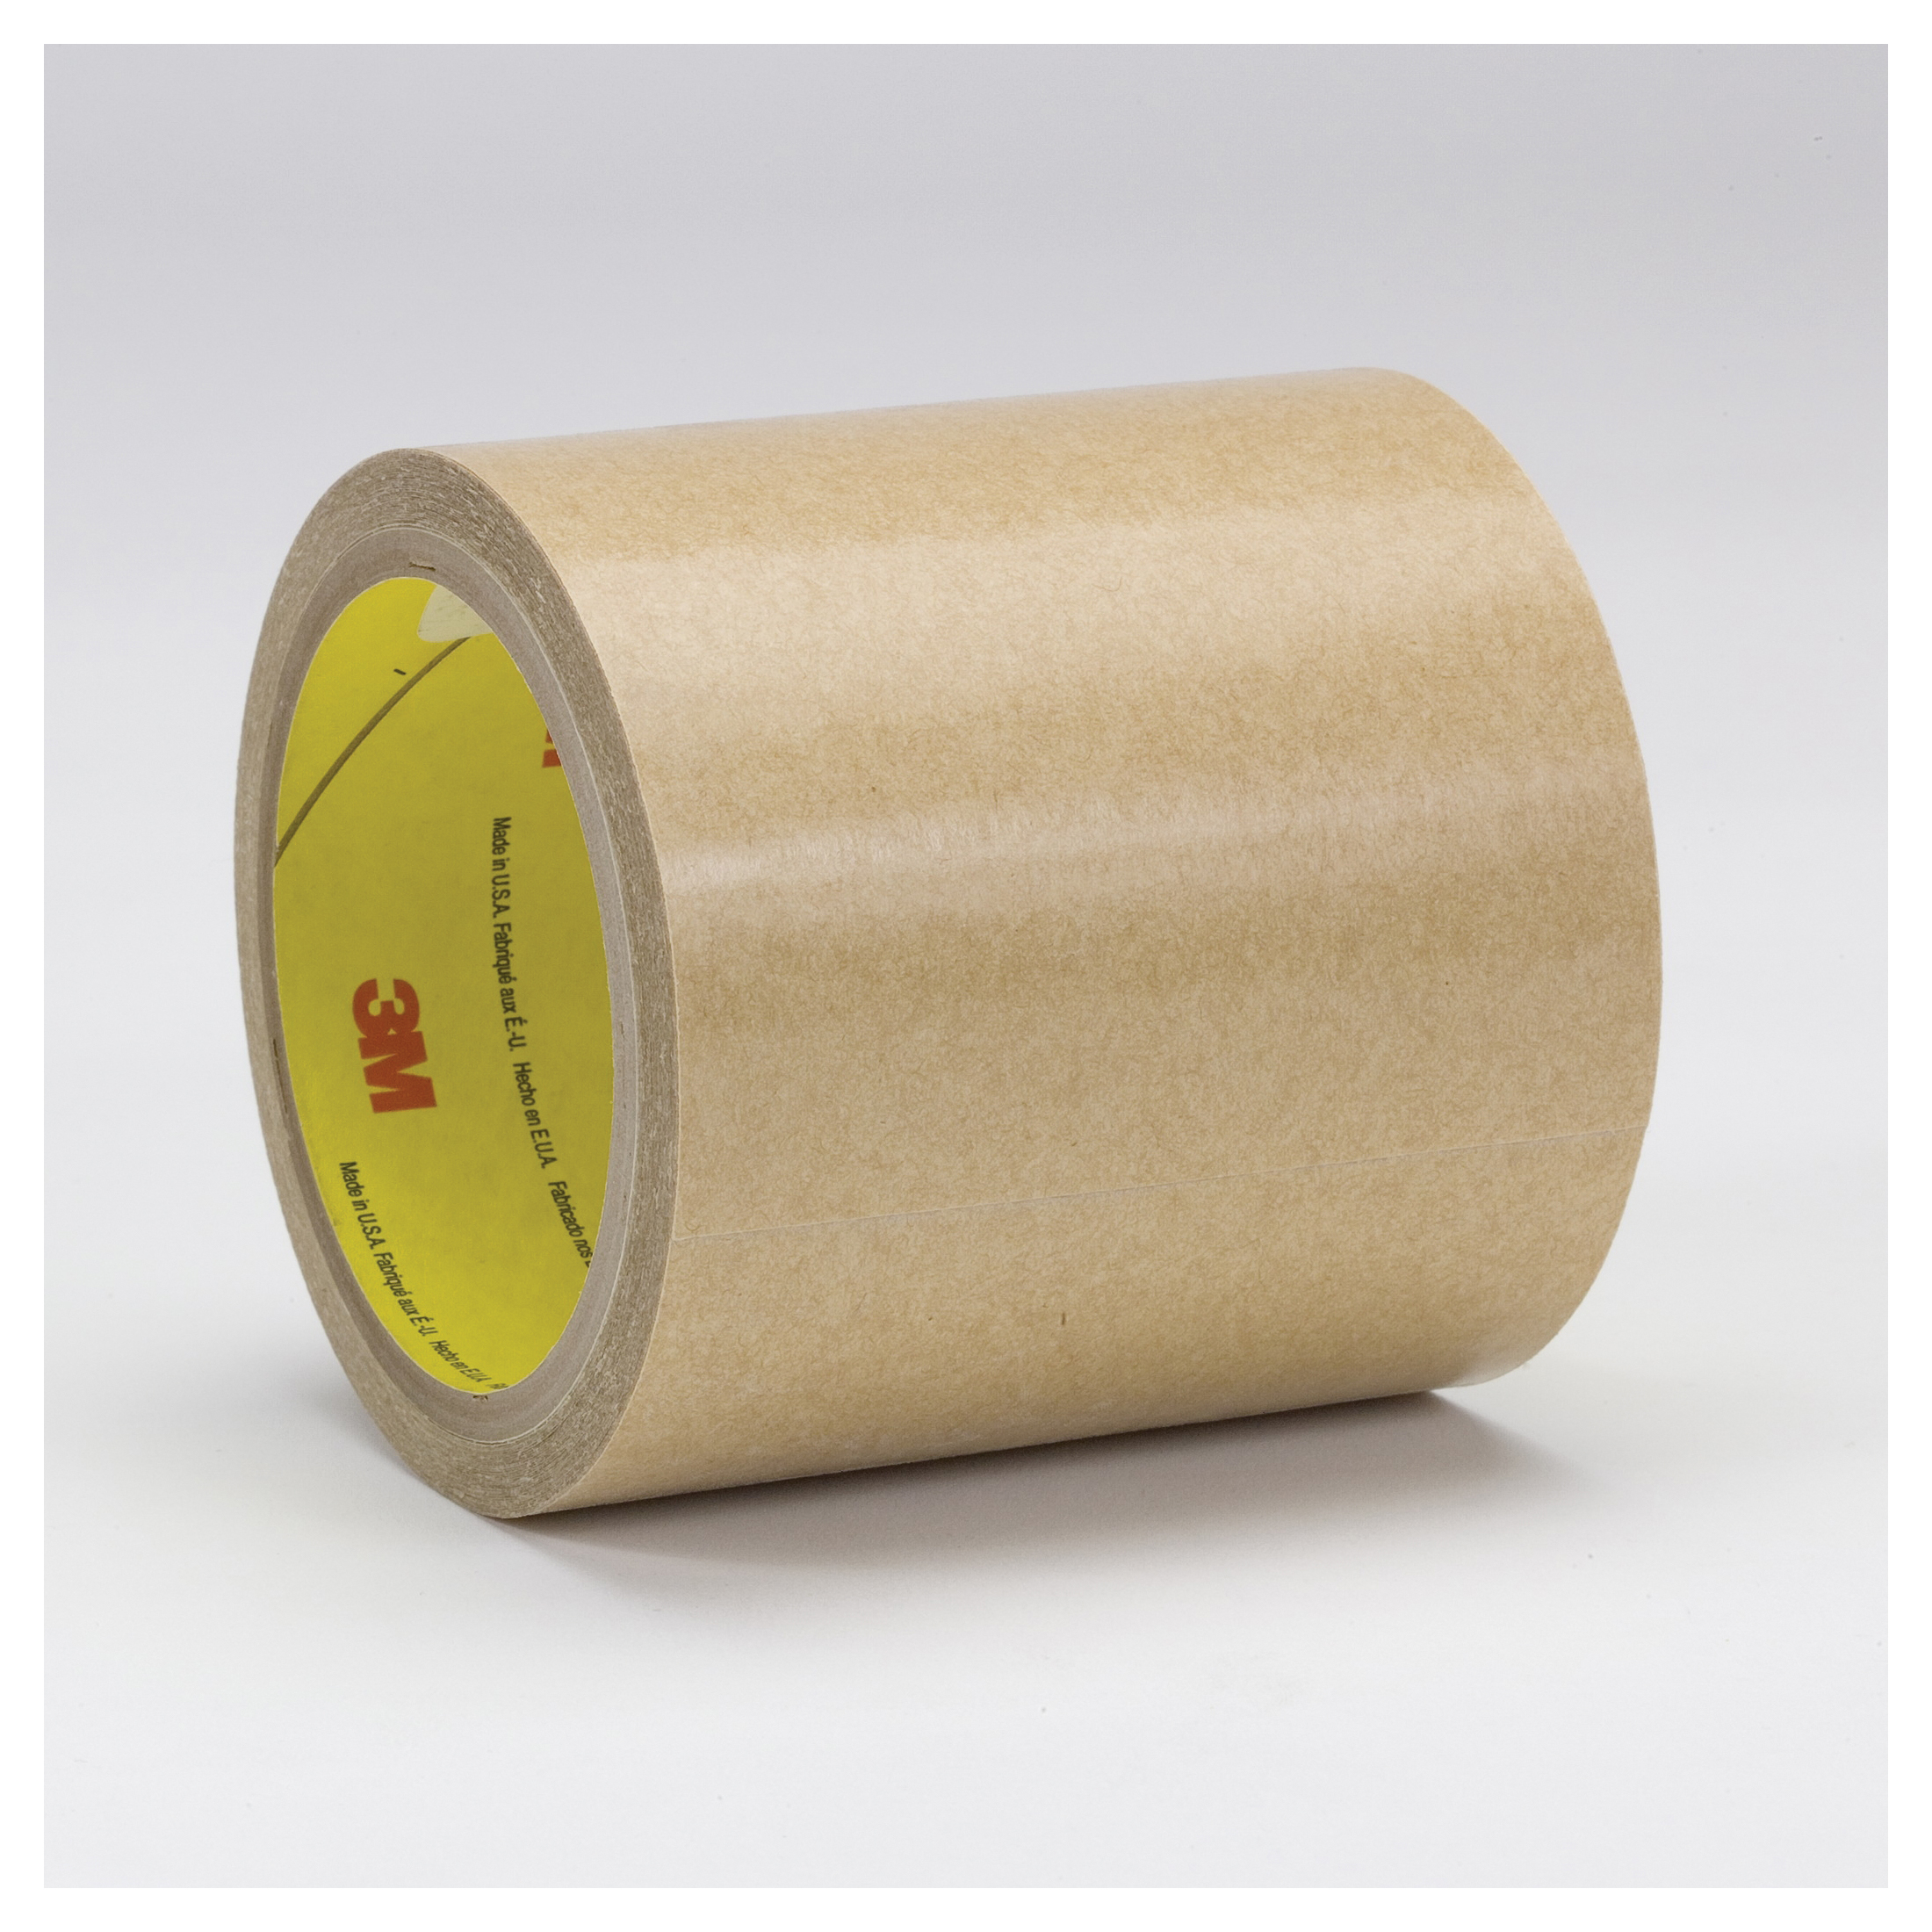 3M™ 021200-24611 General Purpose High Tack Adhesive Transfer Tape, 60 yd L x 2 in W, 5.5 mil THK, 2 mil 300 Acrylic Adhesive, Clear